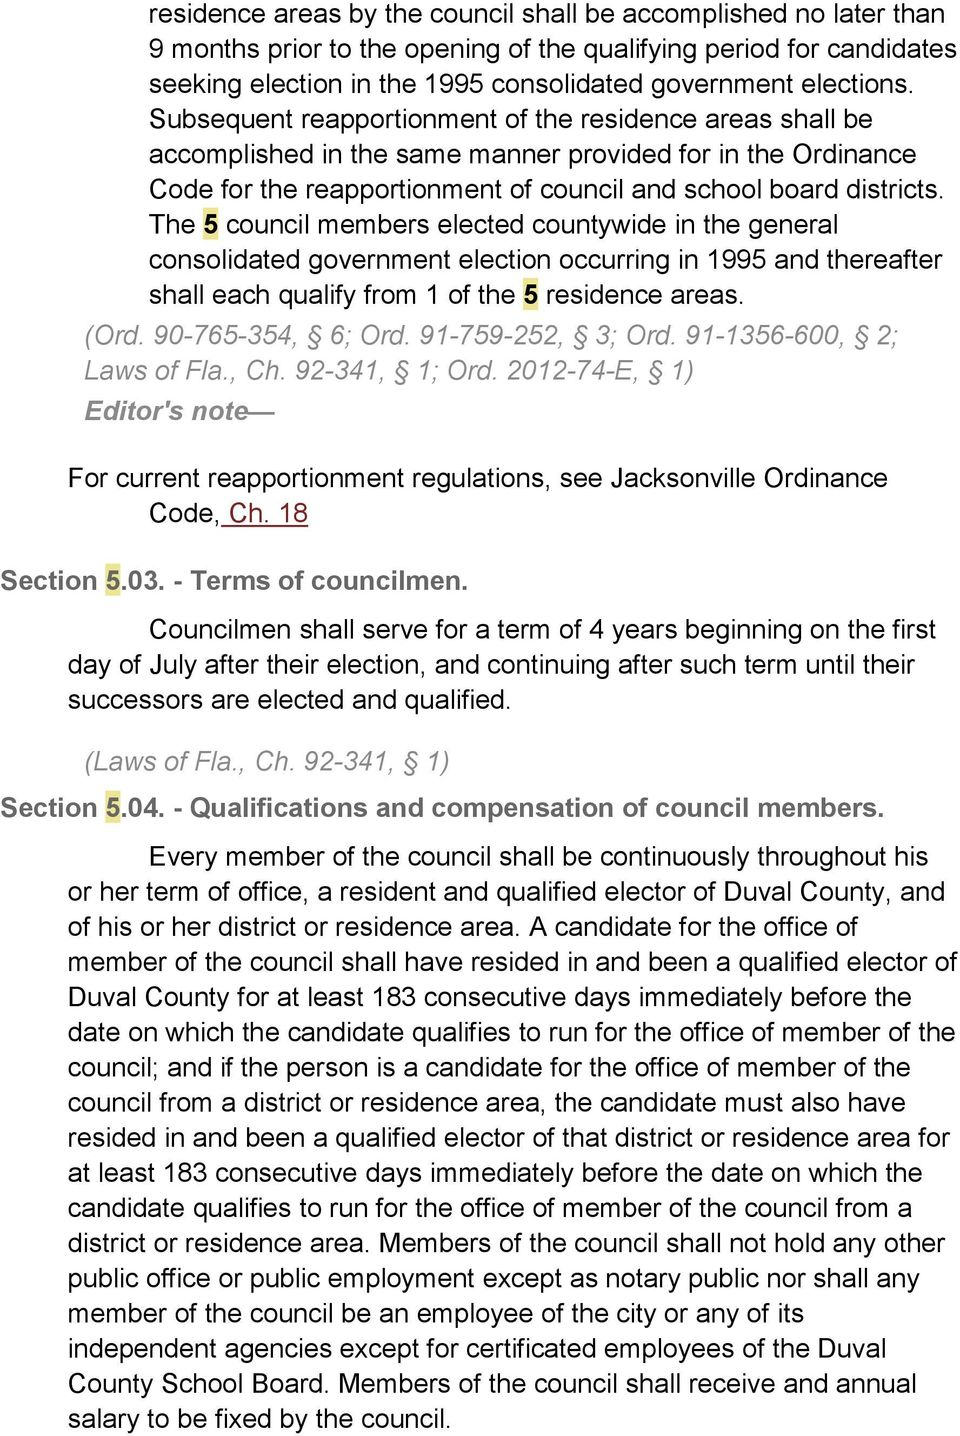 The 5 council members elected countywide in the general consolidated government election occurring in 1995 and thereafter shall each qualify from 1 of the 5 residence areas. (Ord. 90-765-354, 6; Ord.